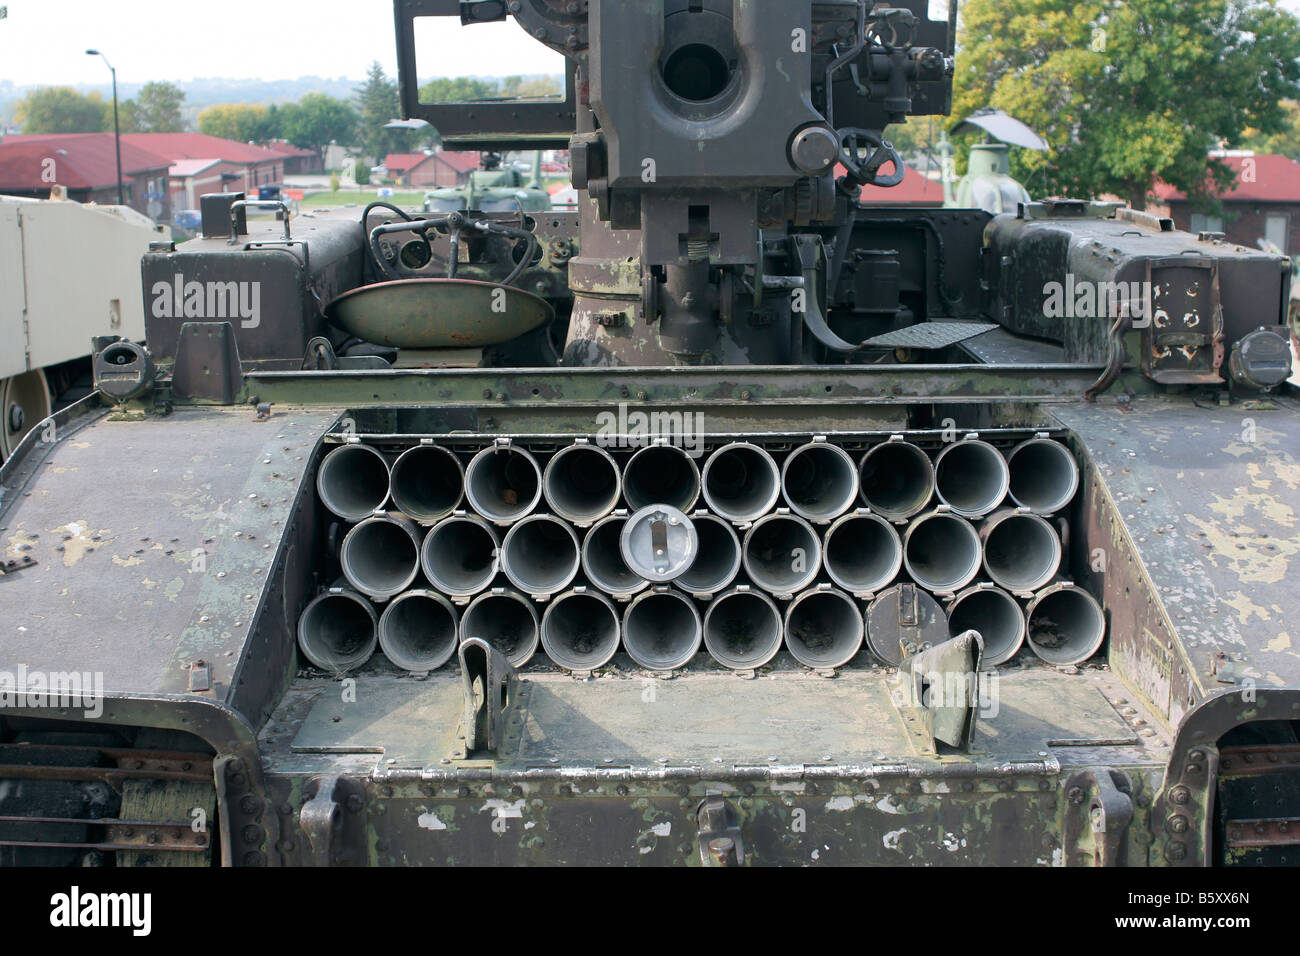 Ammunition storage tubes on a self propelled gun Gold Star Military museum Camp Dodge Iowa - Stock Image